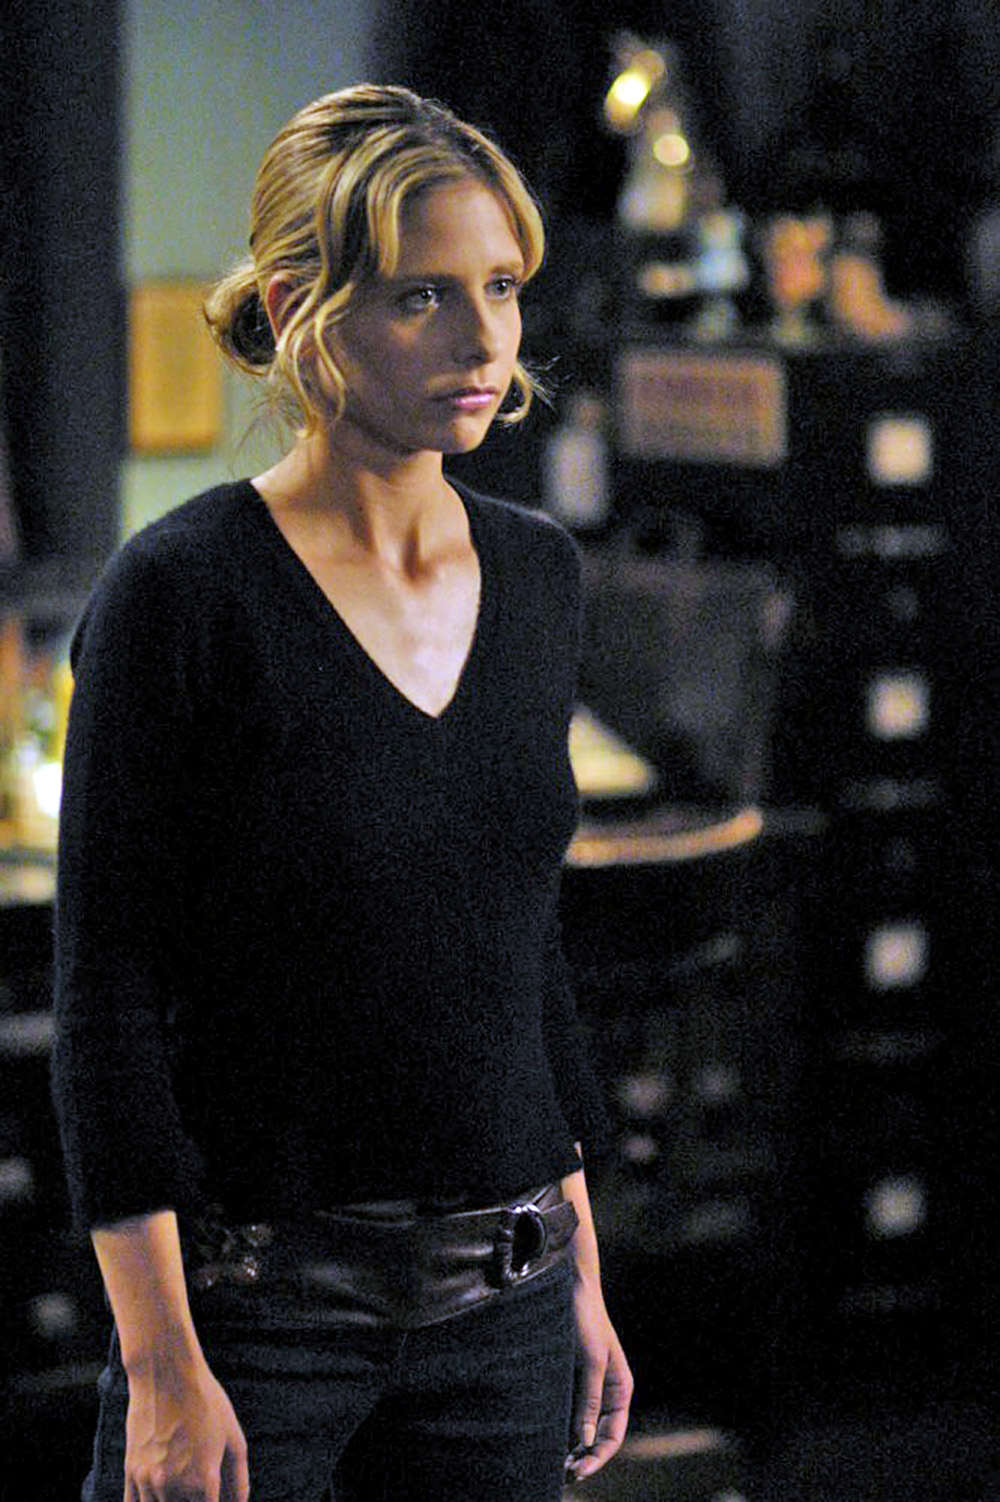 Buffy 2013 Gallery 02 Sarah Michelle Gellar Photos Part 1